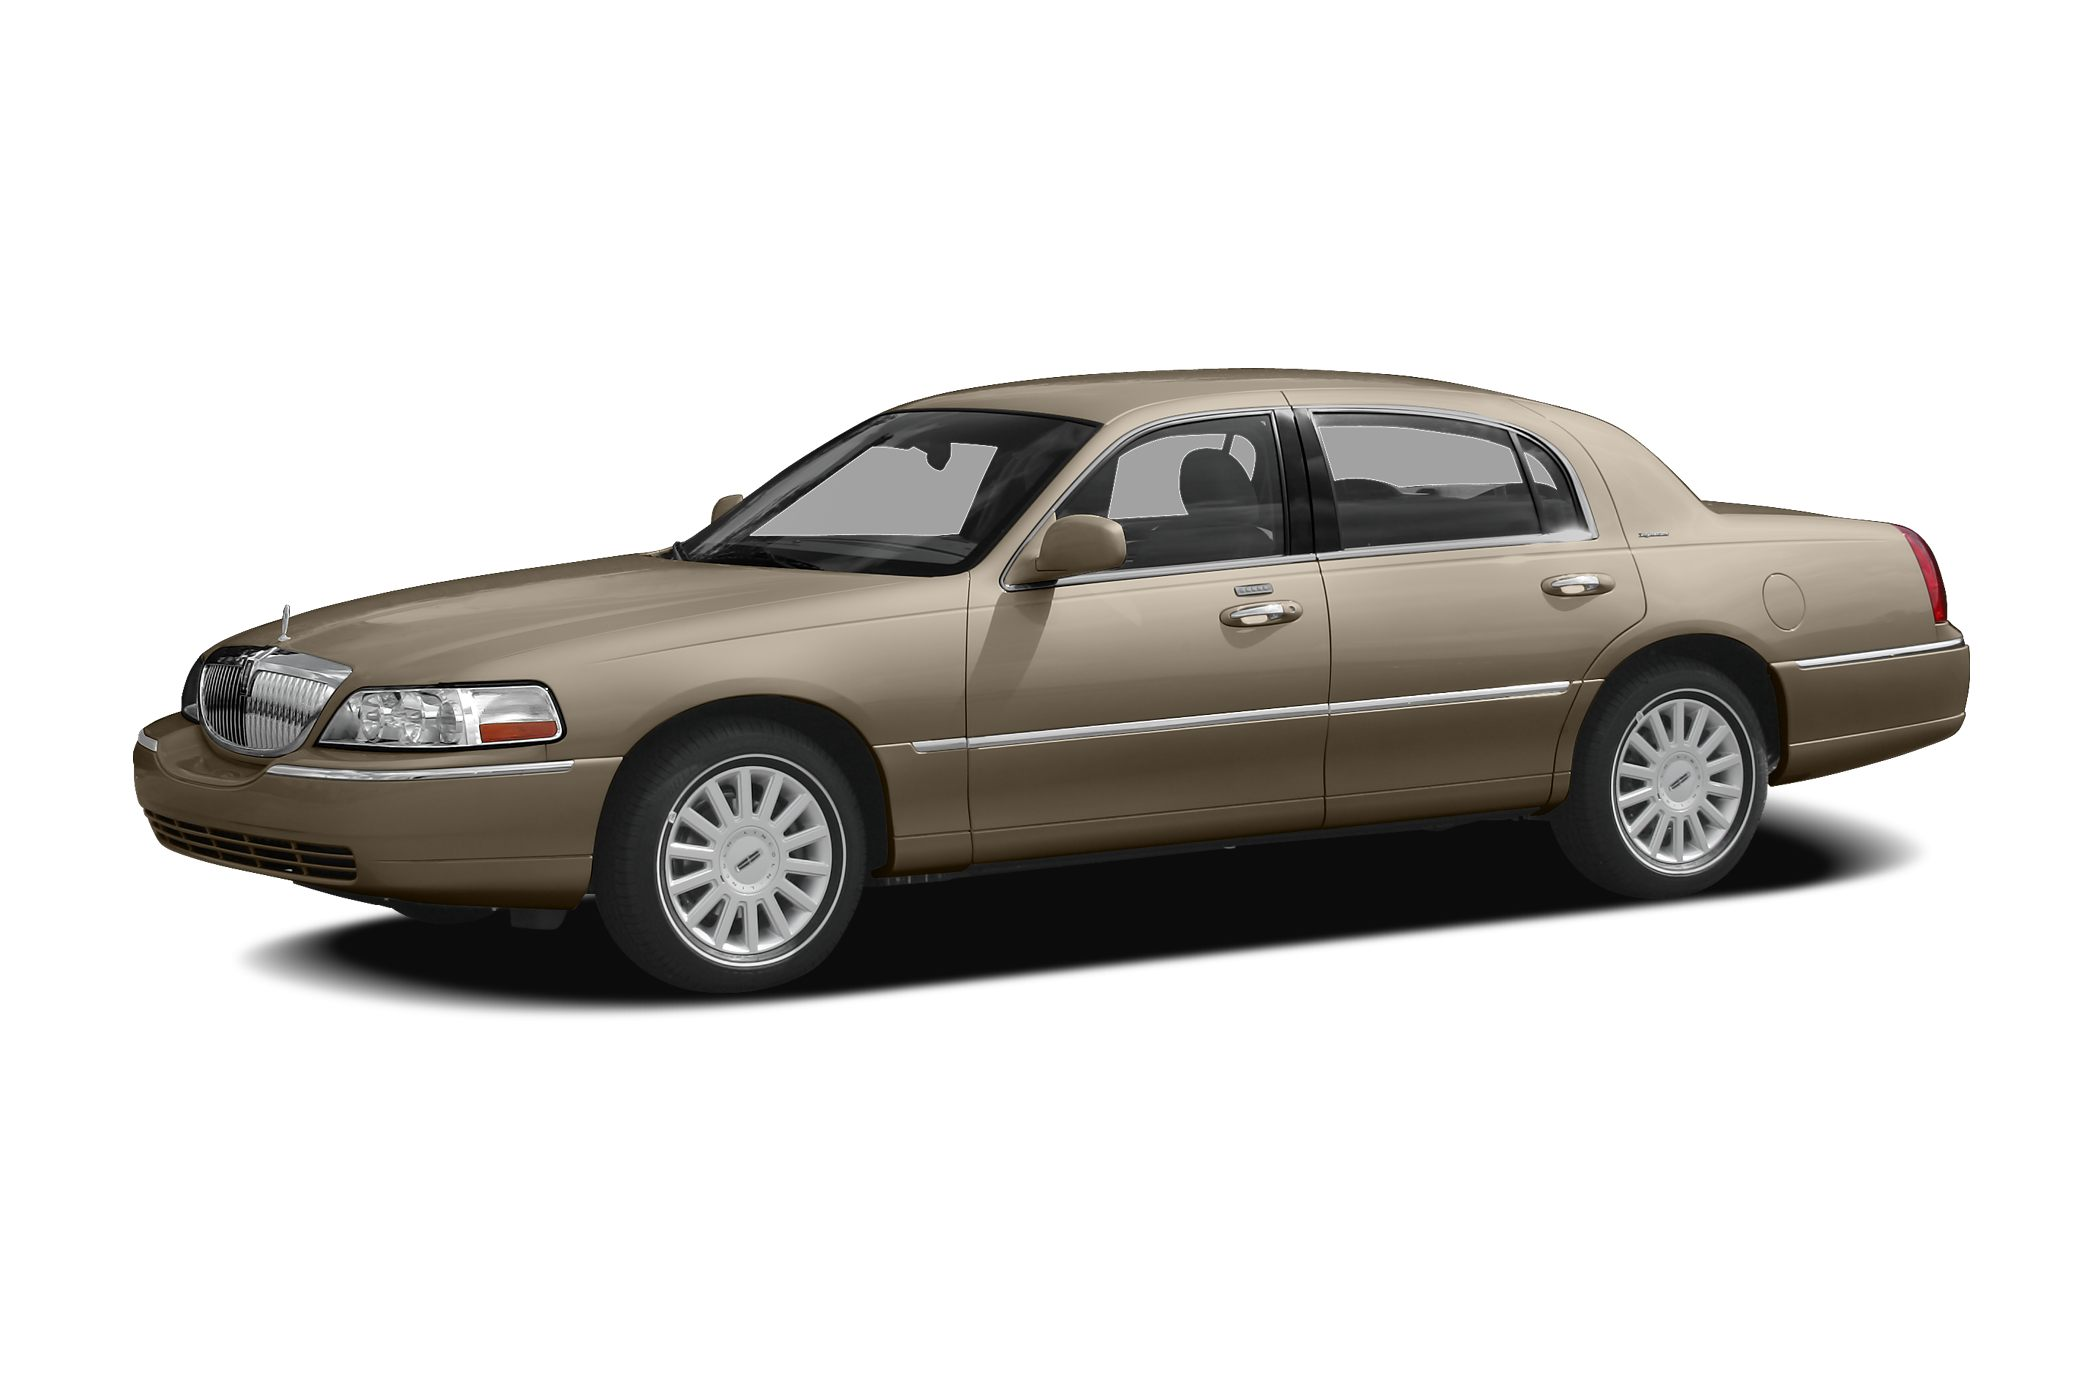 2008 Lincoln Town Car Signature Limited Sedan for sale in Charleston for $11,950 with 118,519 miles.